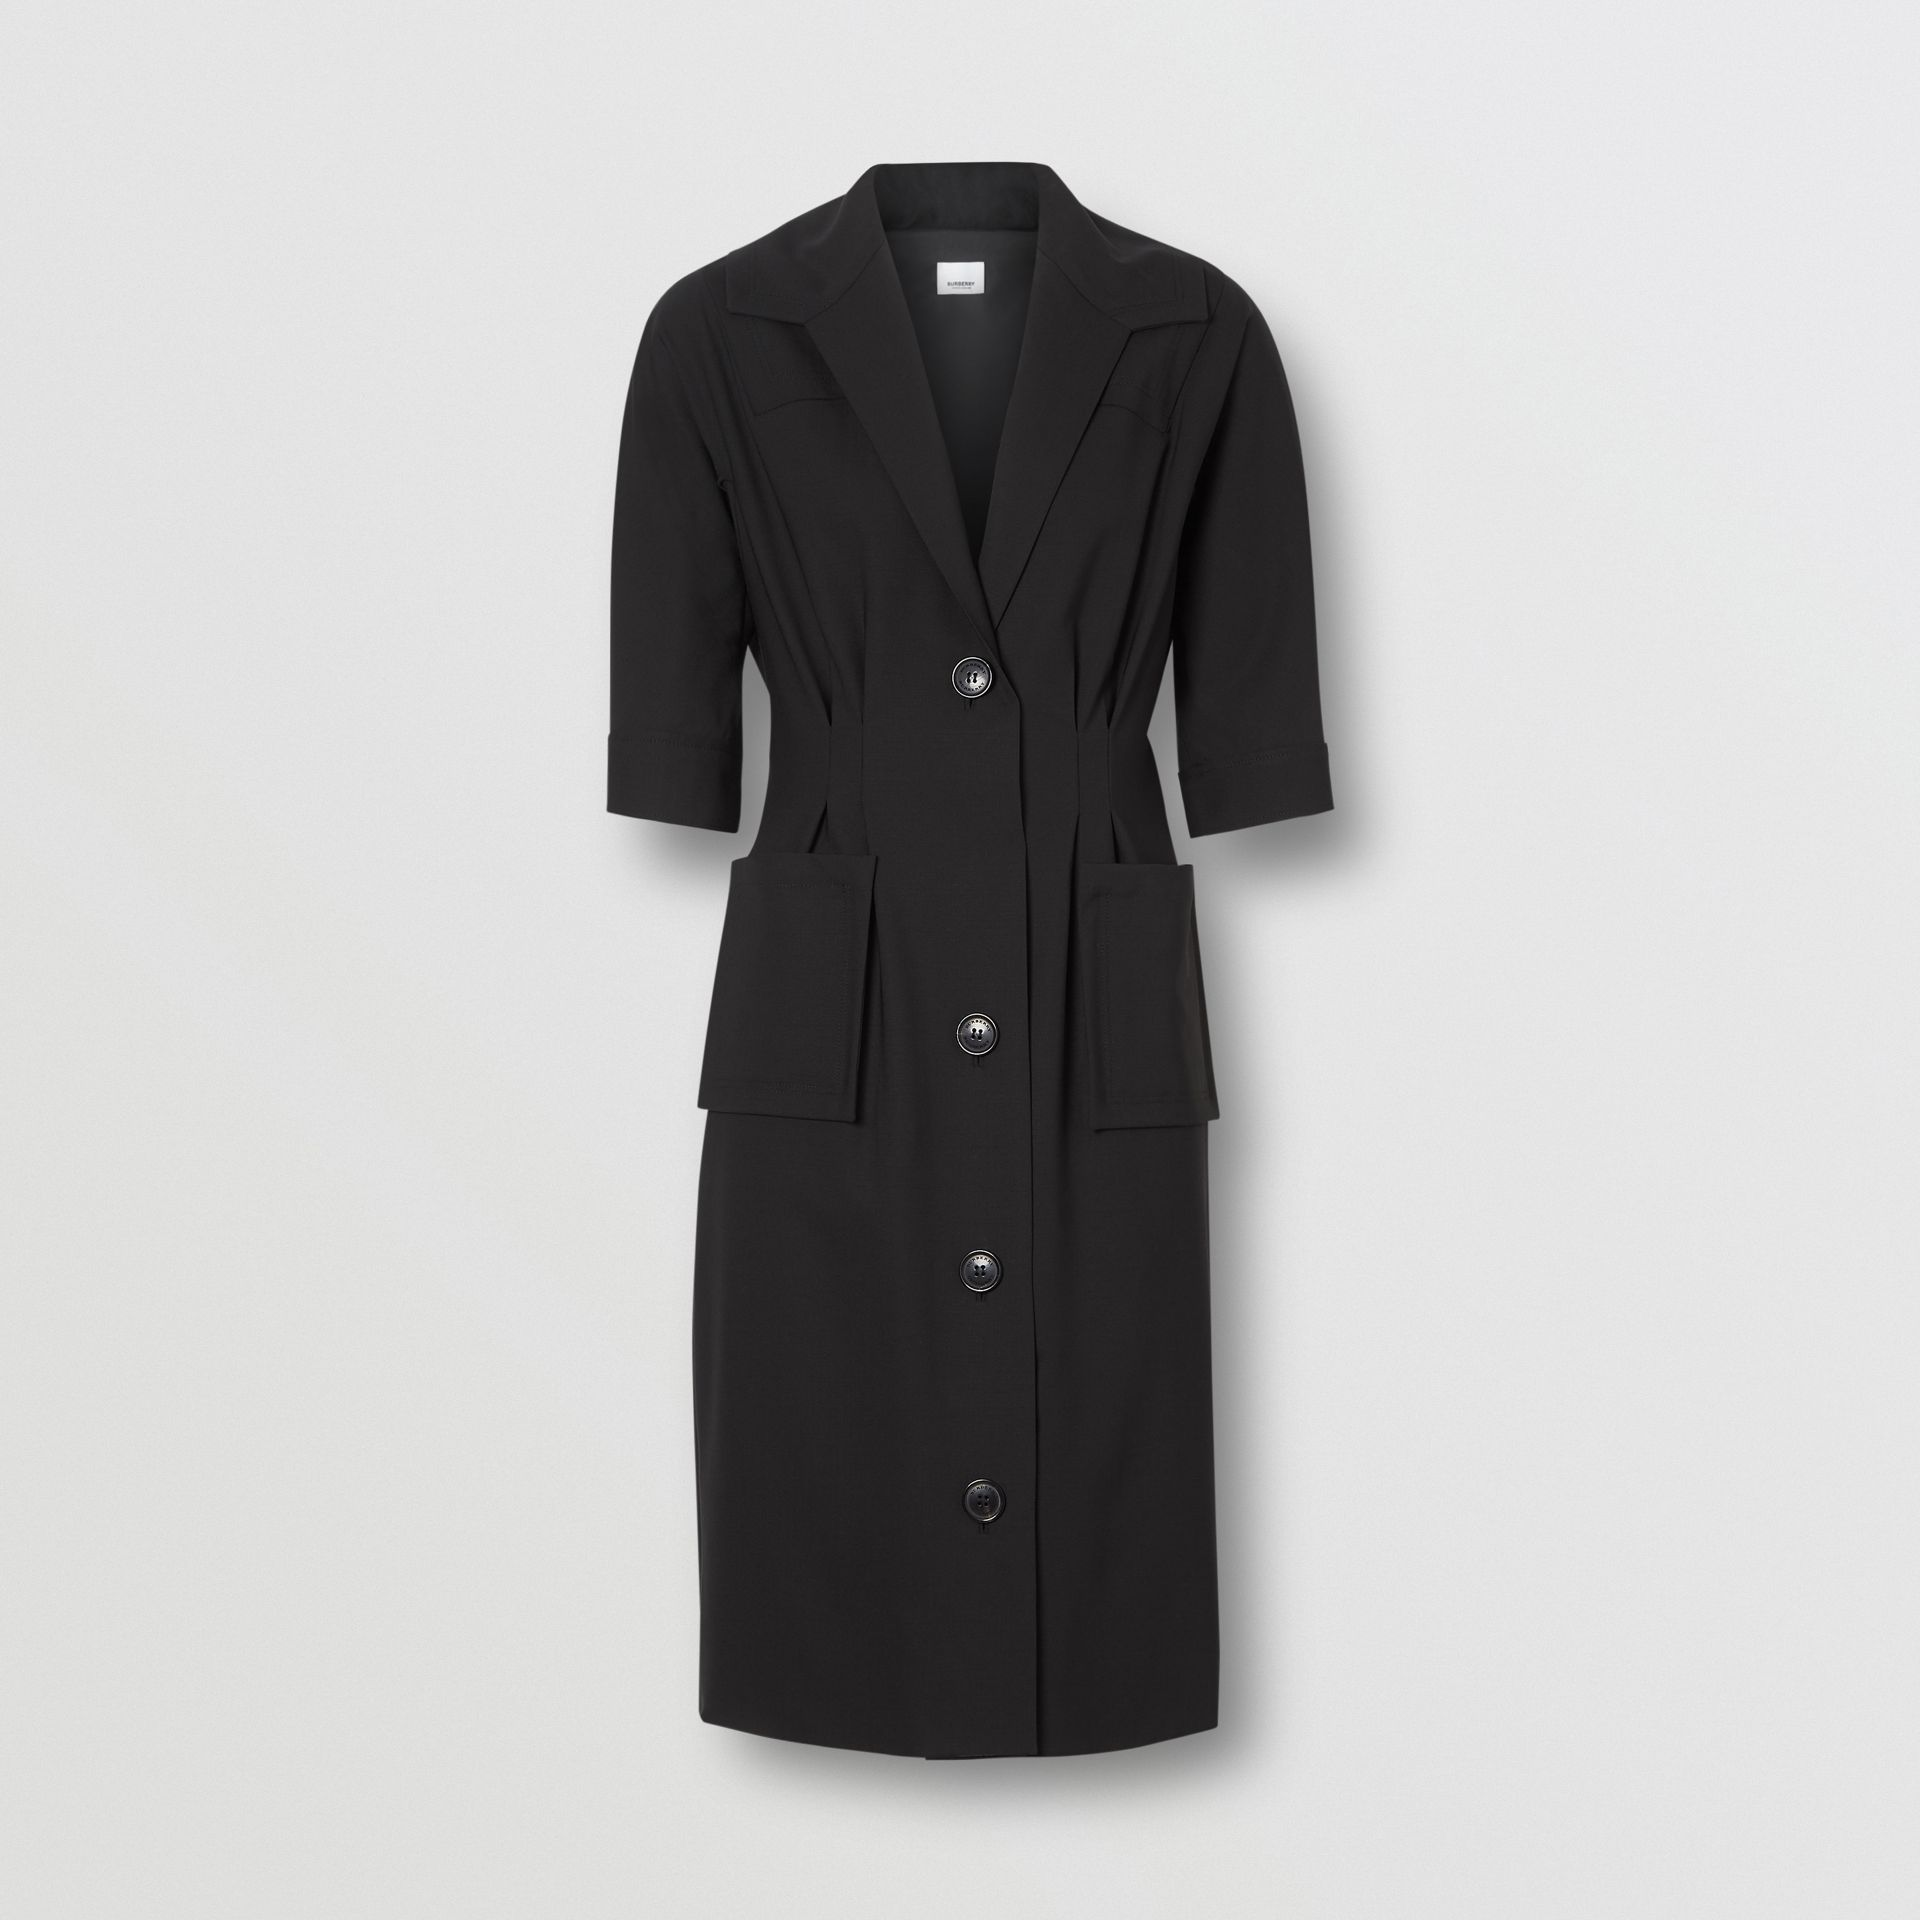 Short-sleeve Stretch Wool Dress in Black - Women | Burberry - gallery image 3